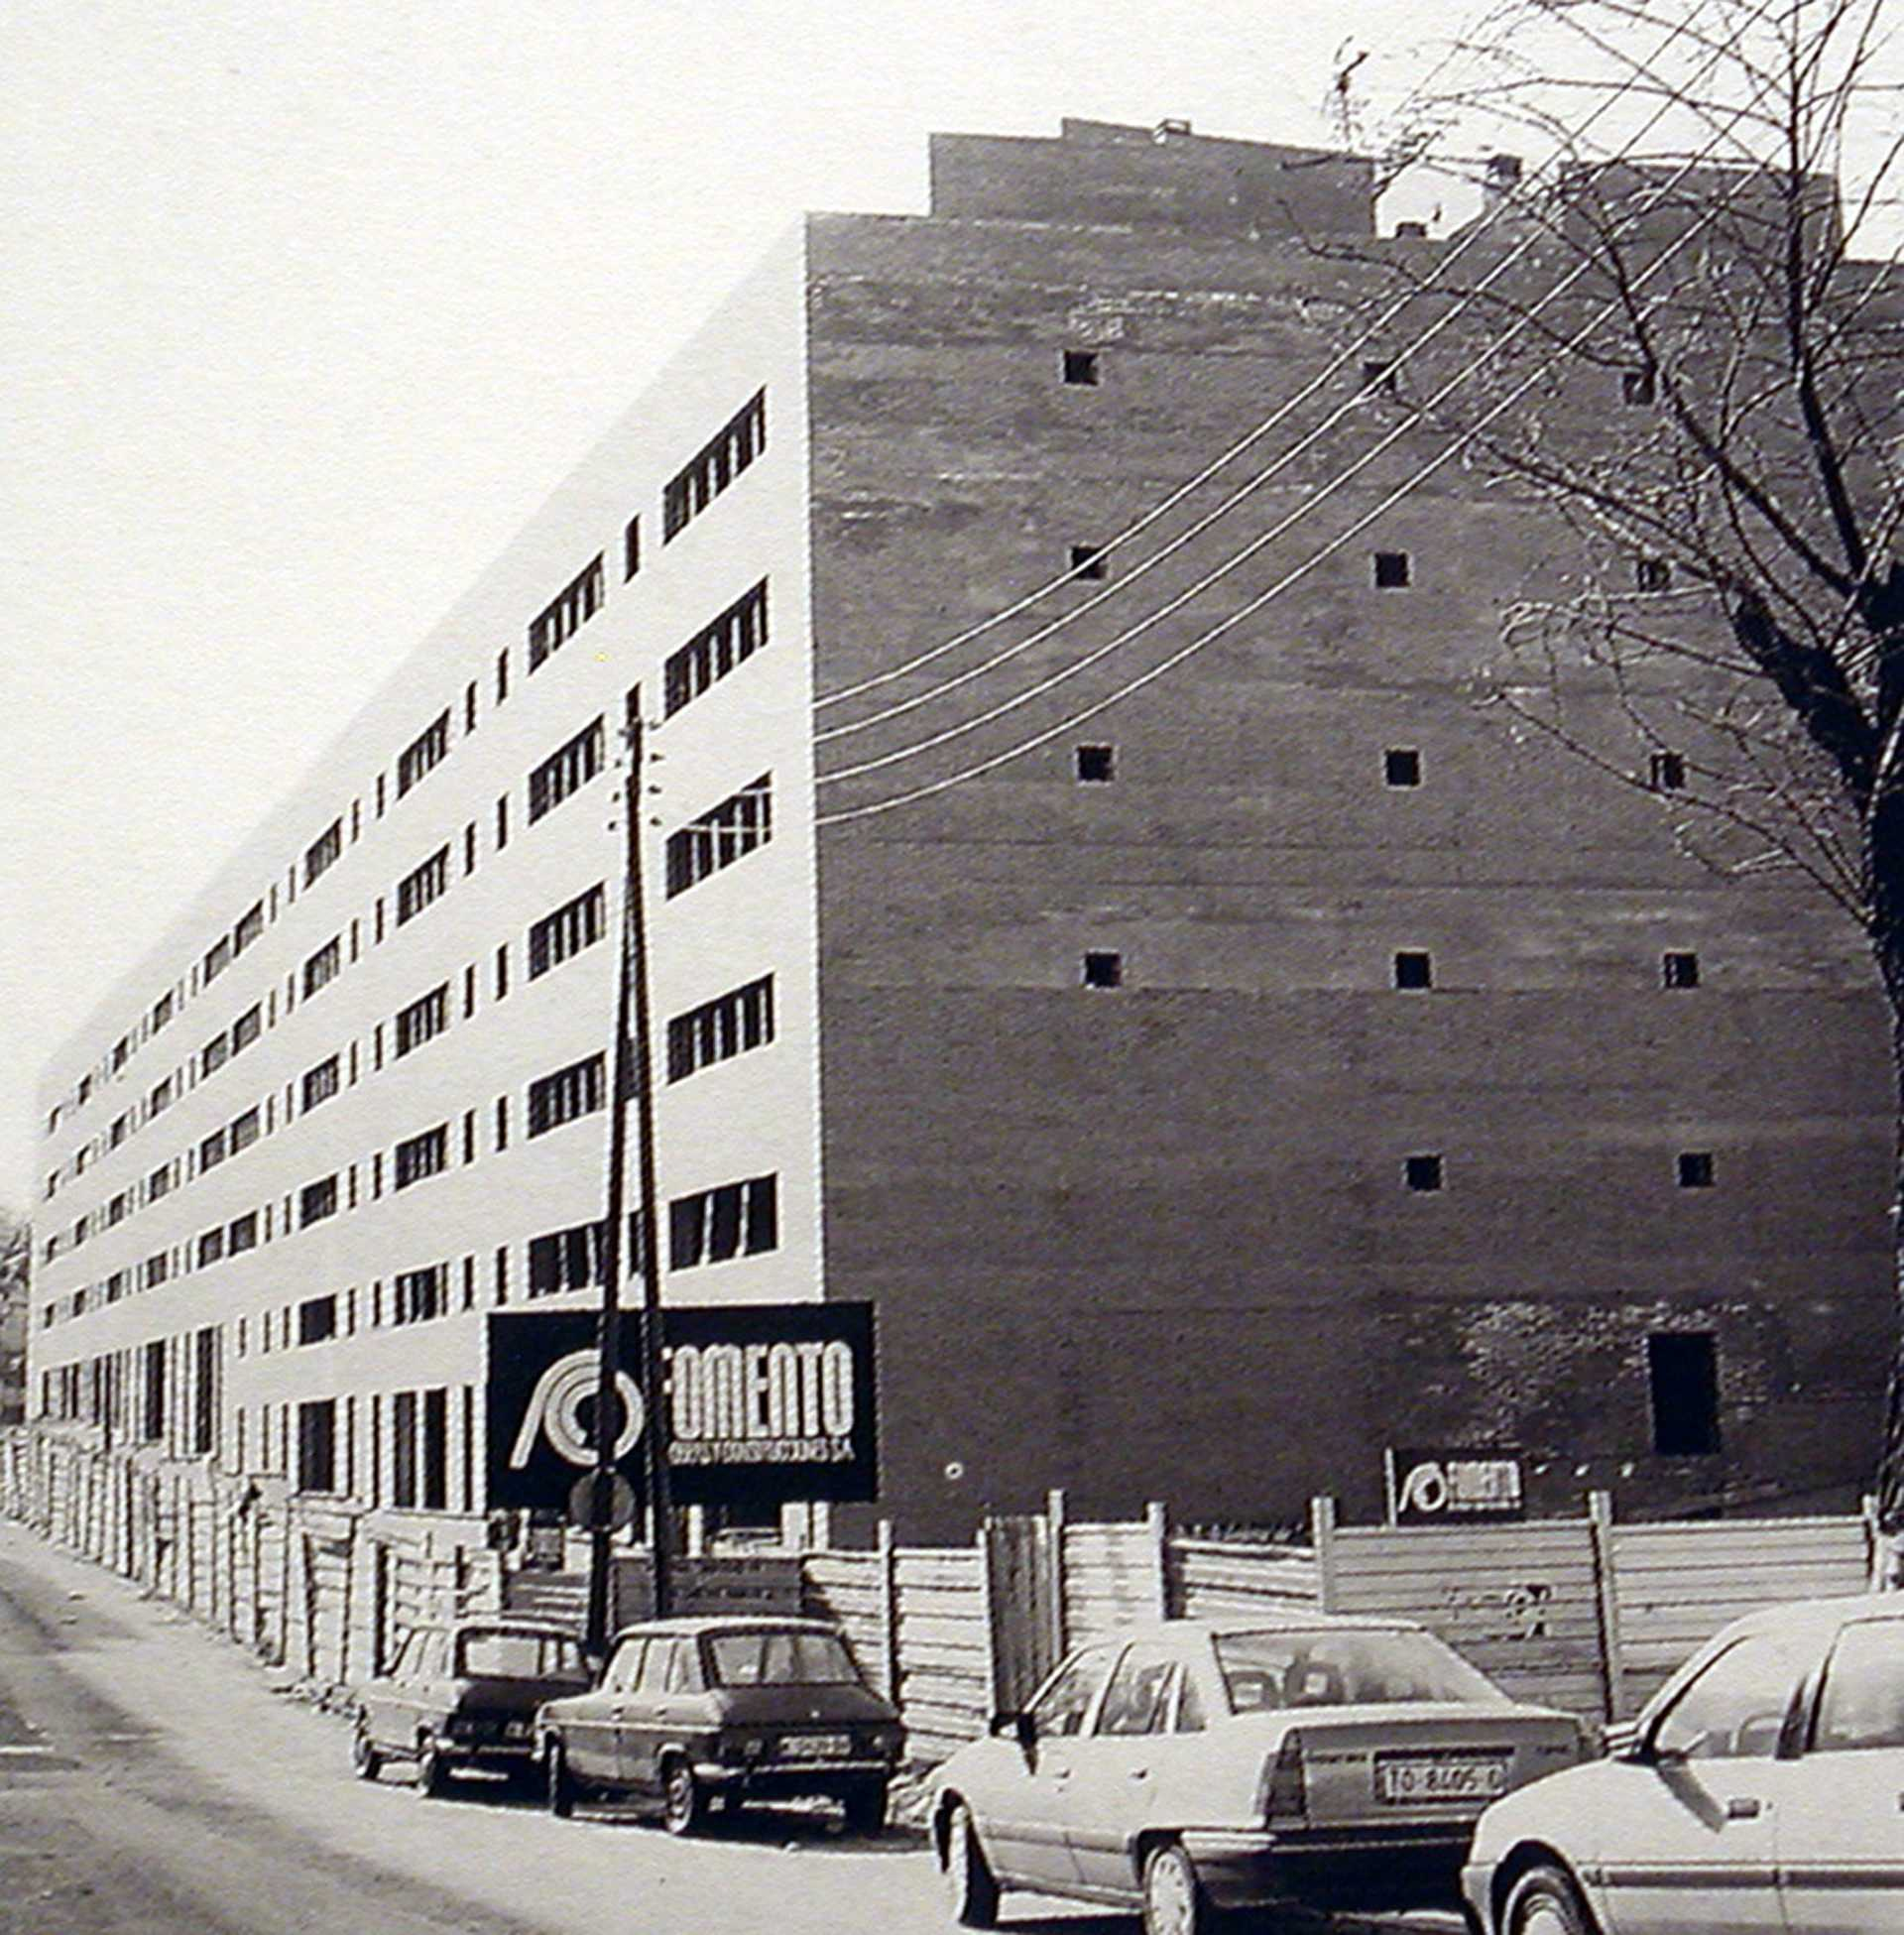 Interview with Alberto Campo Baeza  - 01 Housing Vallecas ICON 56